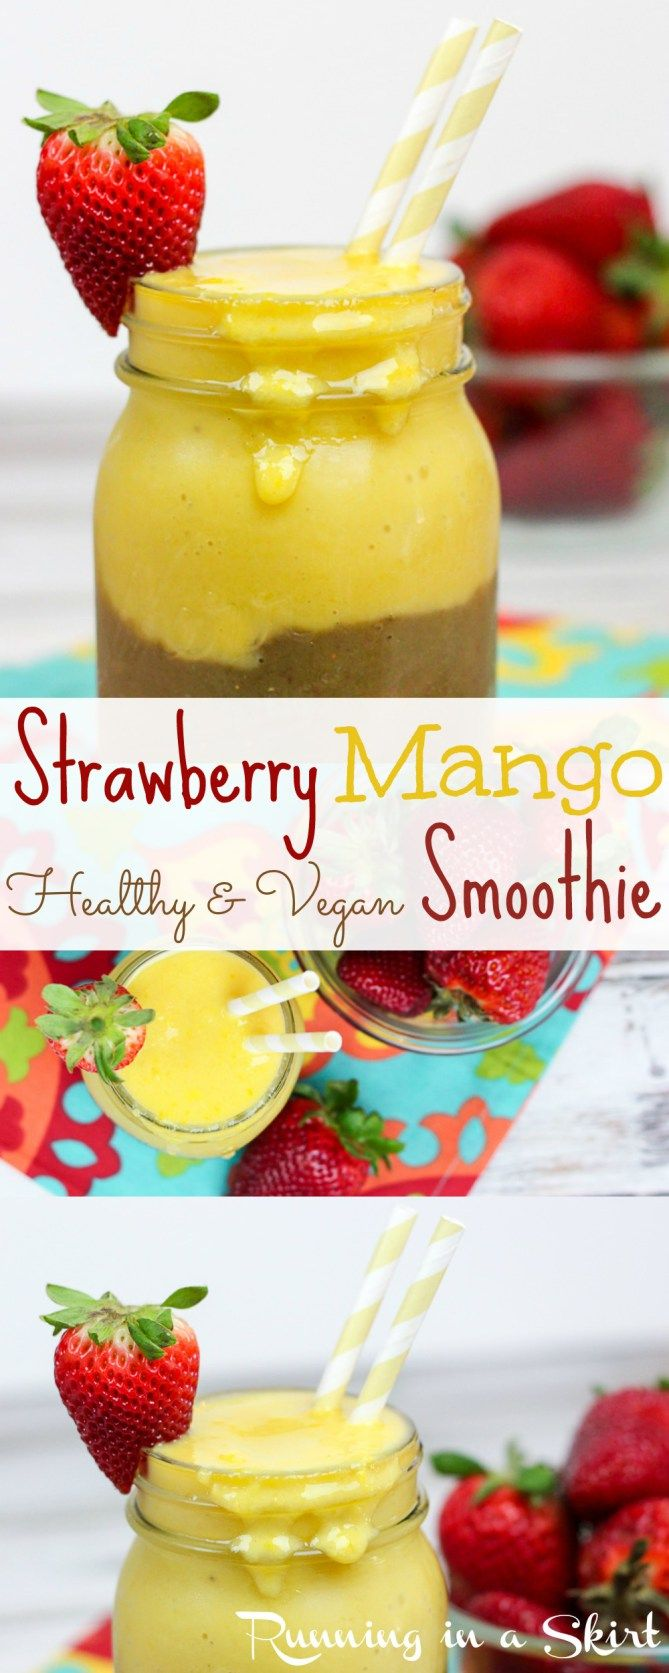 Healthy Strawberry and Mango Smoothie Recipe. Vegan smoothie with almond milk!  Hidden spinach in the strawberry layer.  Includes tips on how to layer a smoothie.  Running in a Skirt